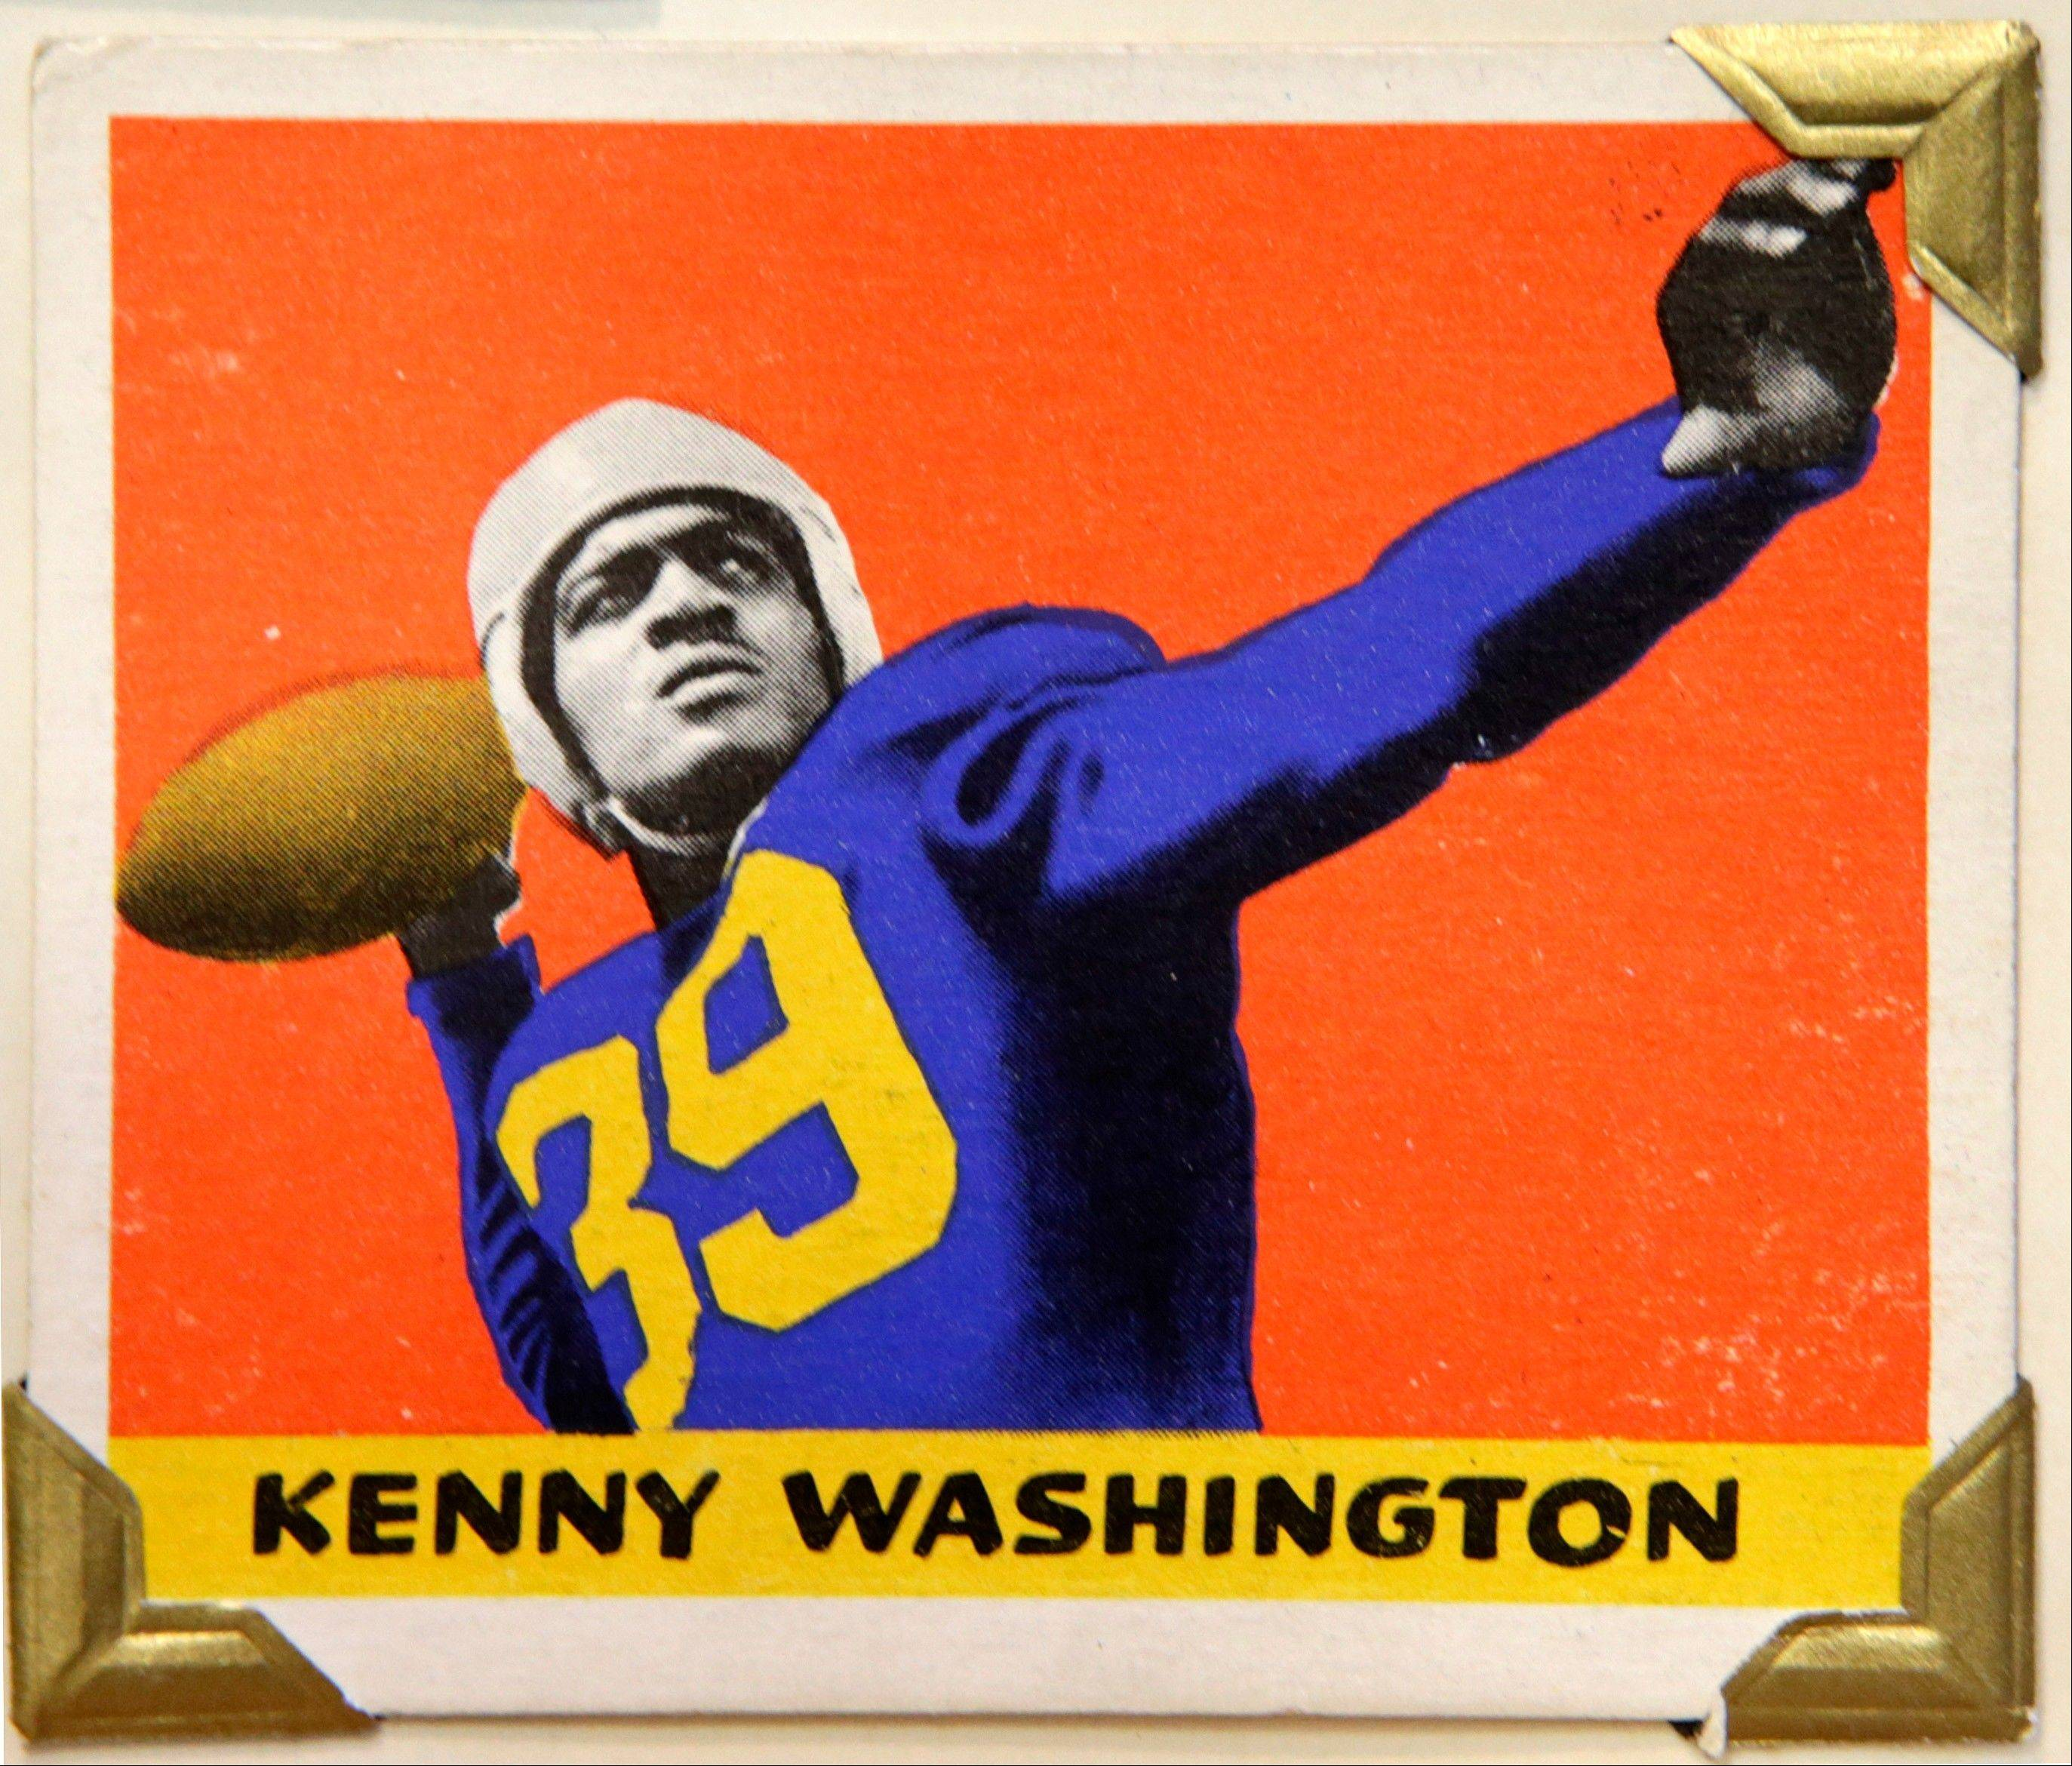 UCLA tailback and Los Angeles Rams running back Kenny Washington is shown in this 1948 Leaf Gum Company football trading card at the Metropolitan Museum of Art in New York.